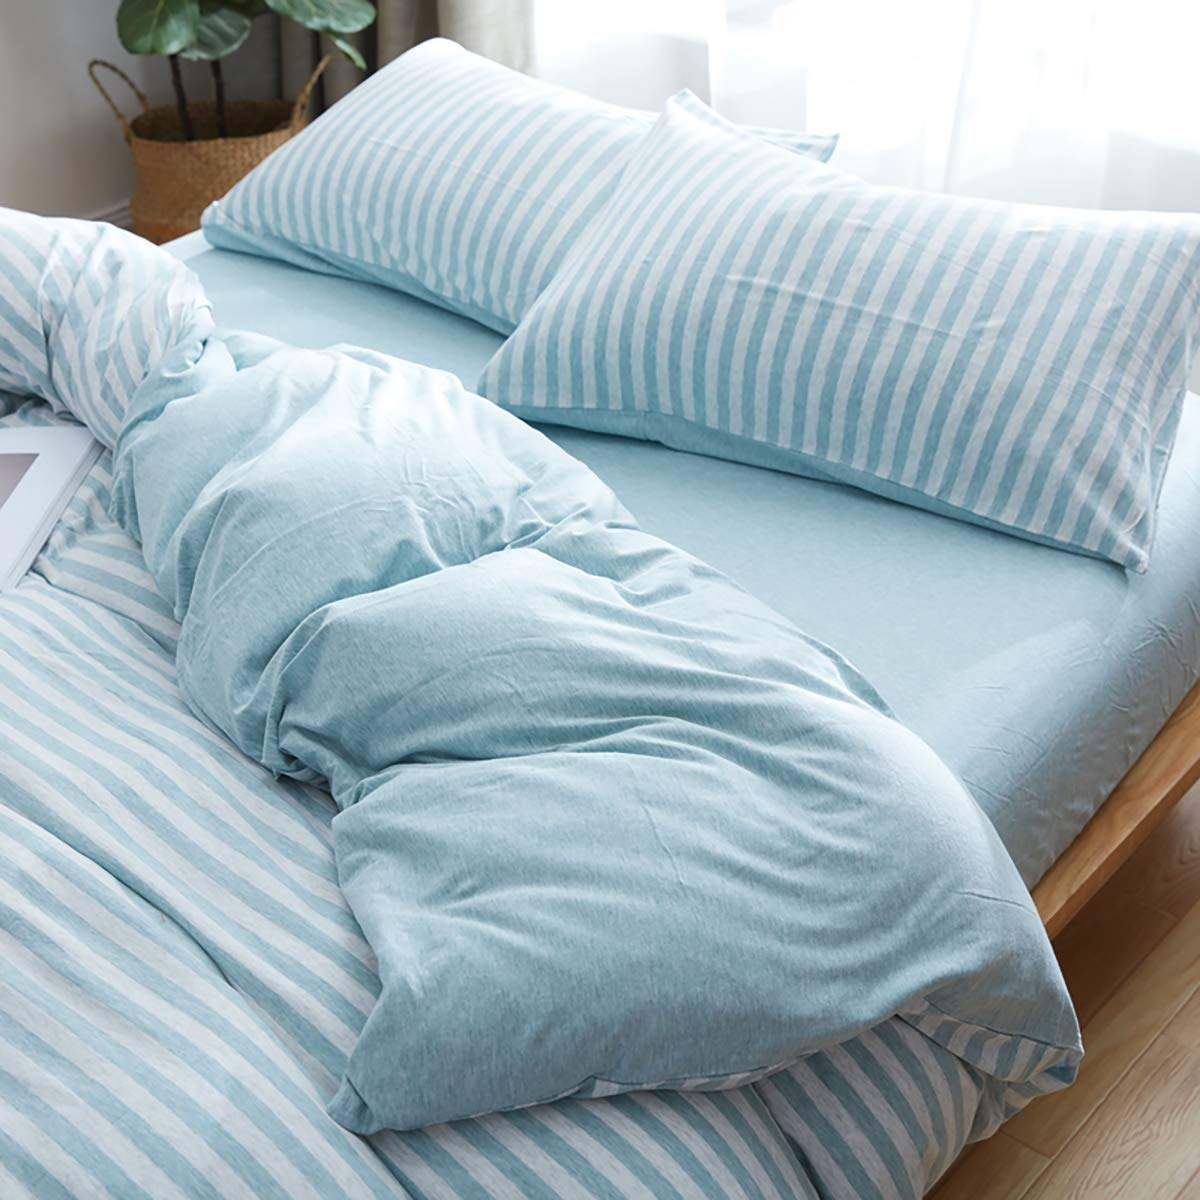 Uozzi Bedding 100% Knitted Cotton Pillow Cases 2